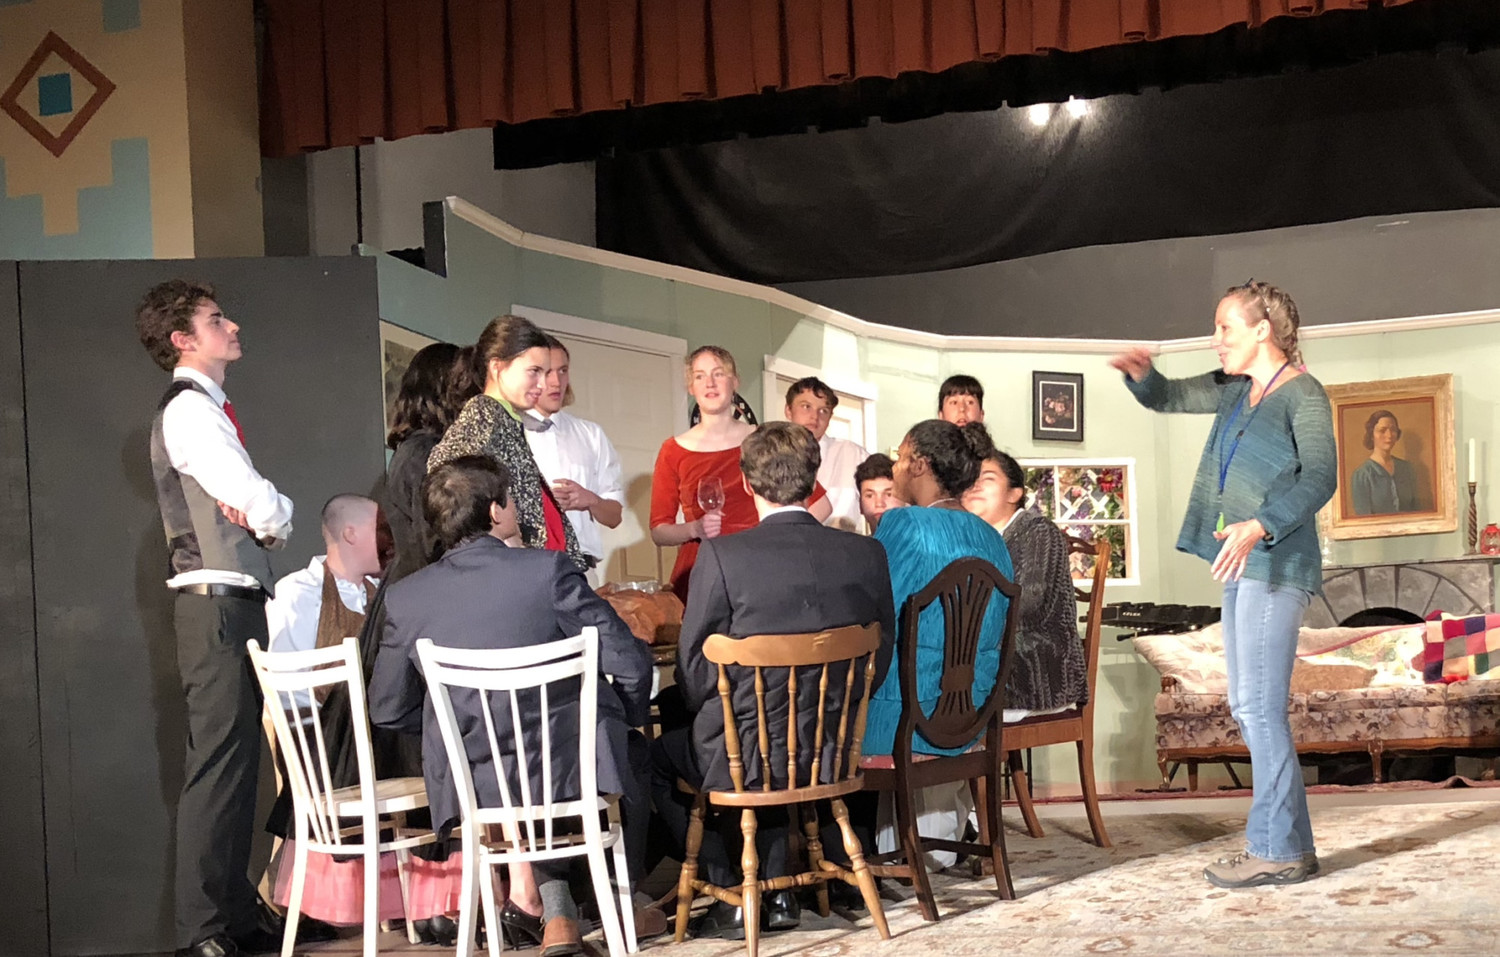 BWW Interview: Barbara Hatch of YOU CAN'T TAKE IT WITH YOU at New Mexico School For The Arts